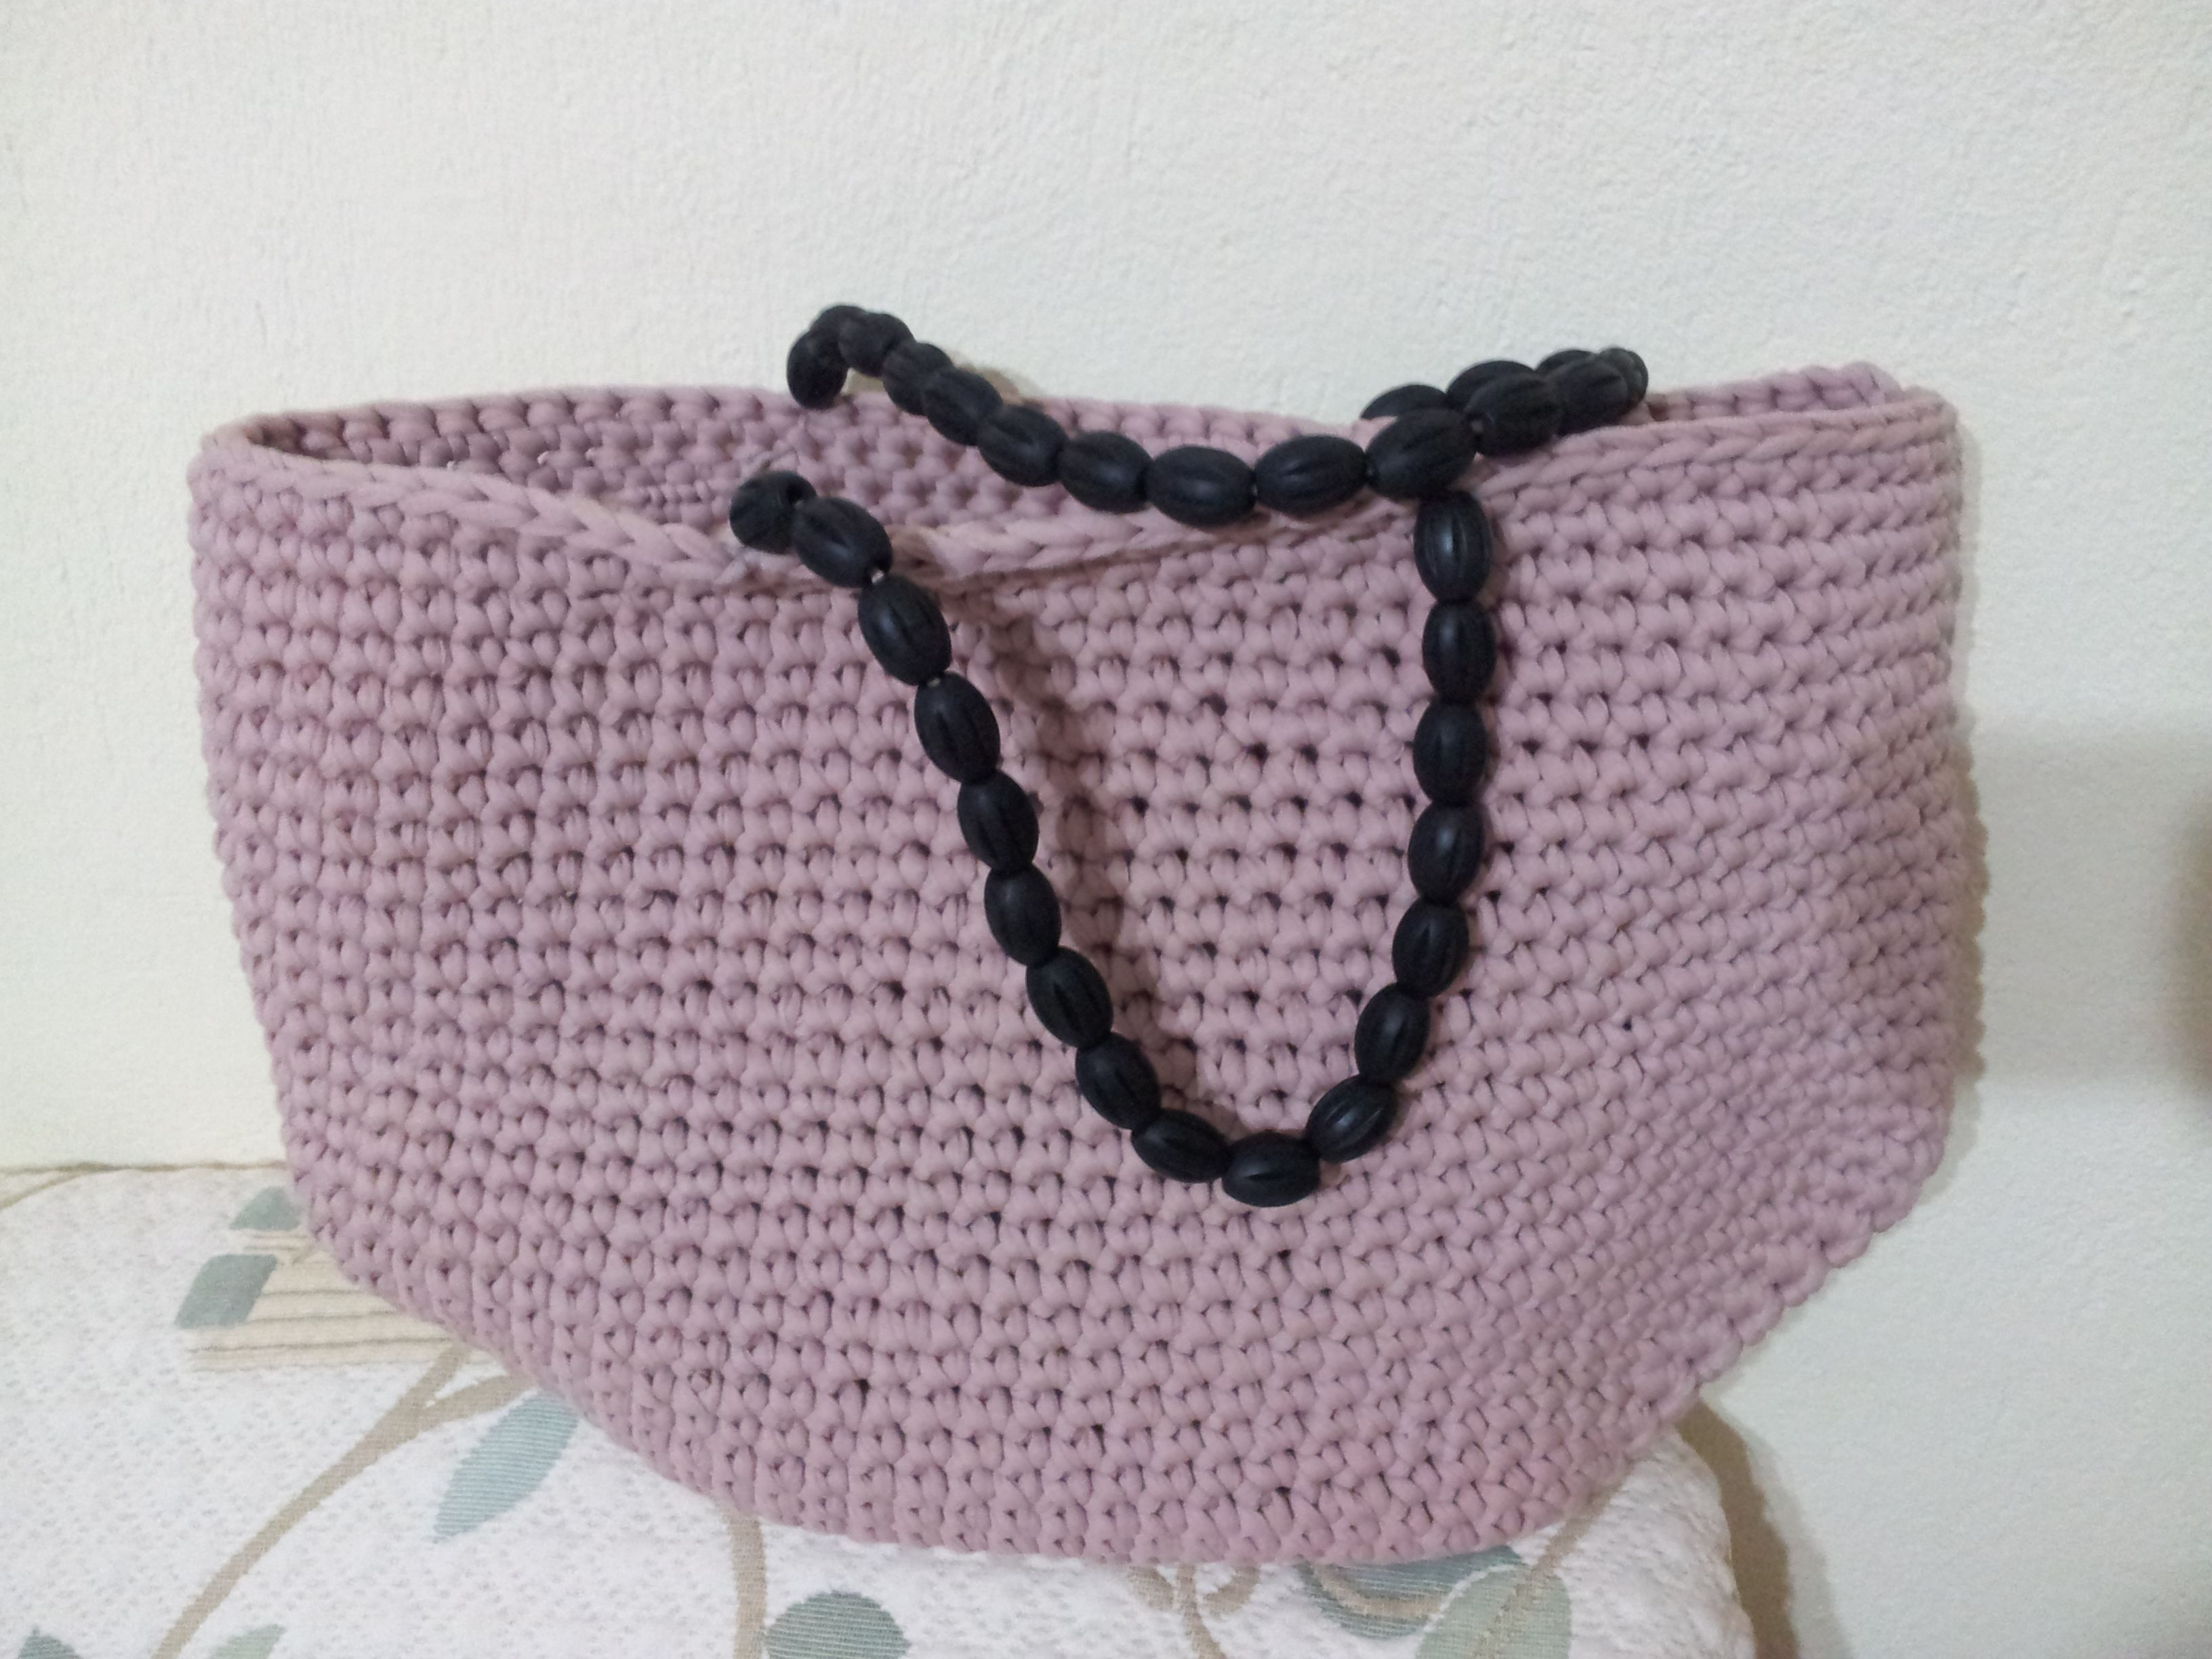 Crochet Bags Pinterest : crochet bag crochet bags and more... Pinterest